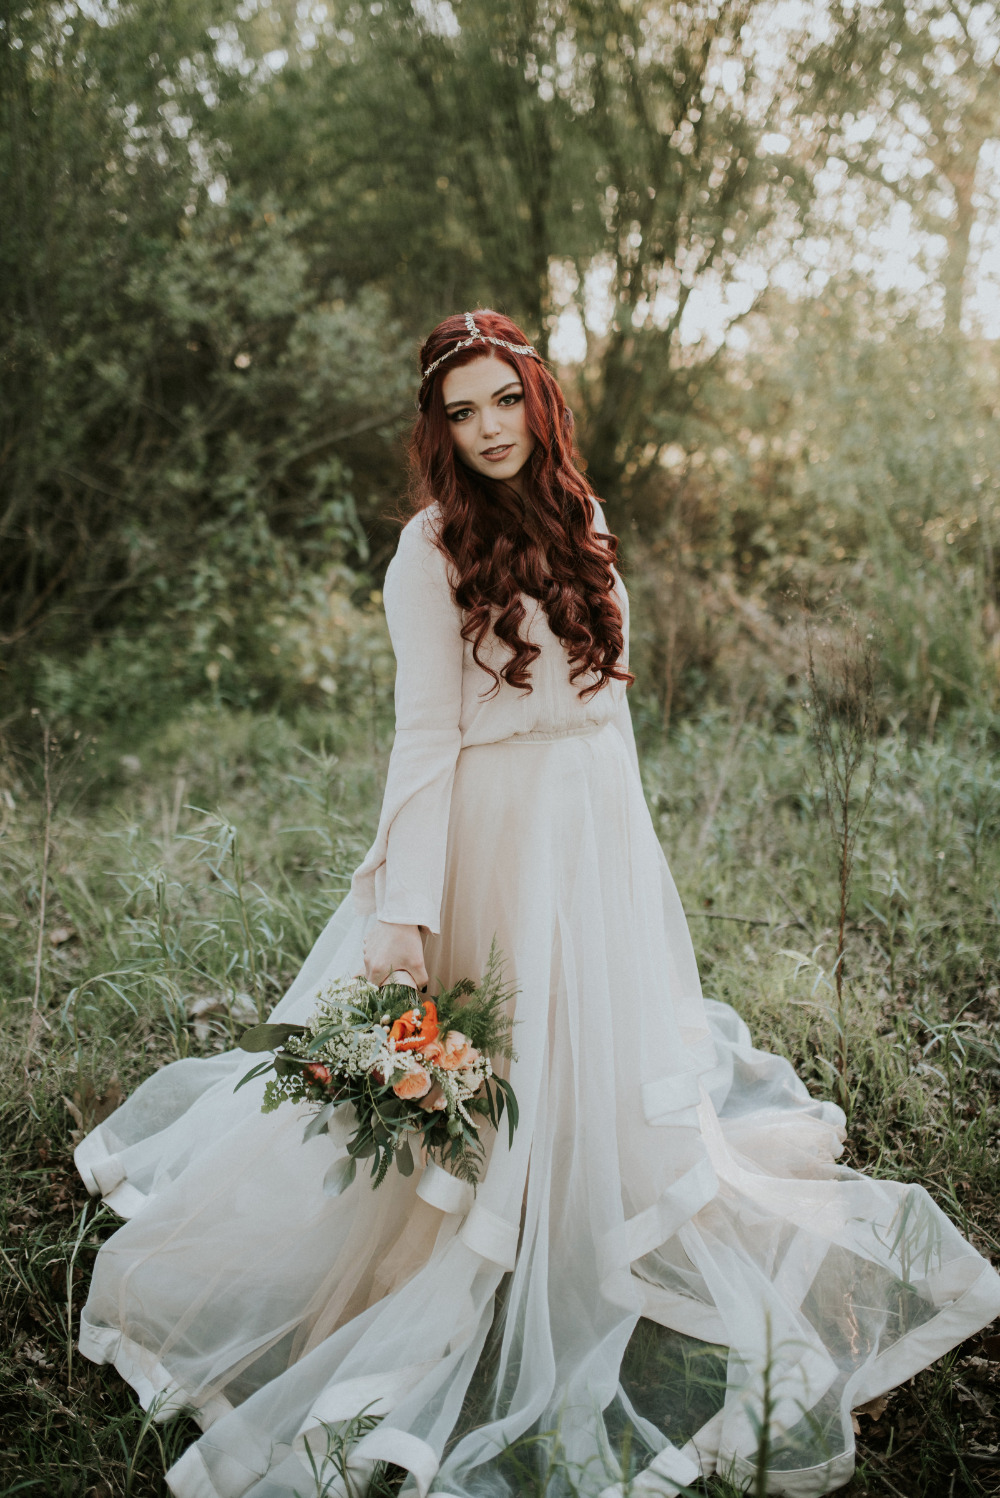 stunning boho bride wedding attire and look